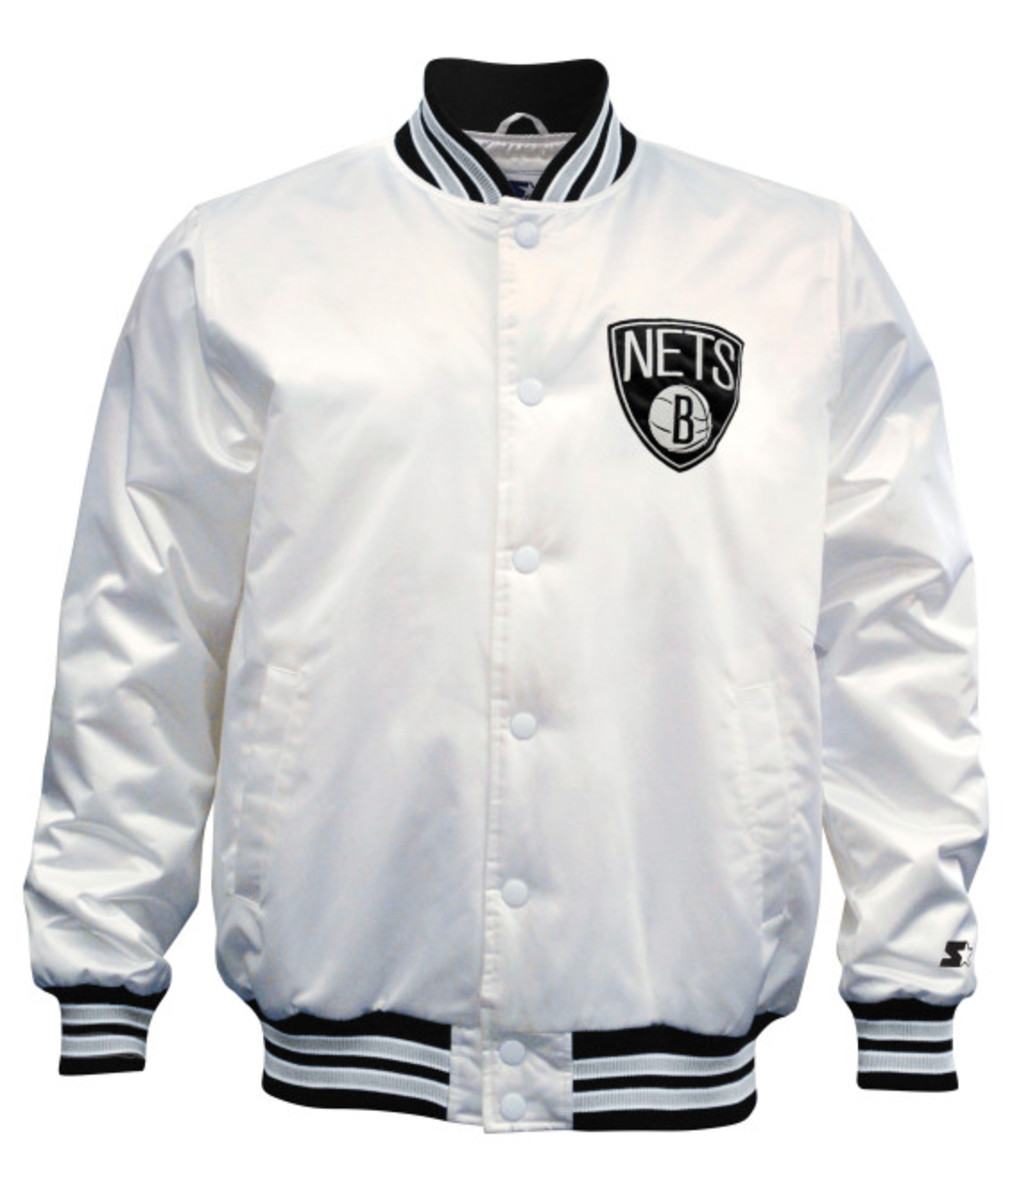 Starter – Apr 12, 2016 & Brooklyn Nets Limited Edition Satin Jacket in Christmas White - 3